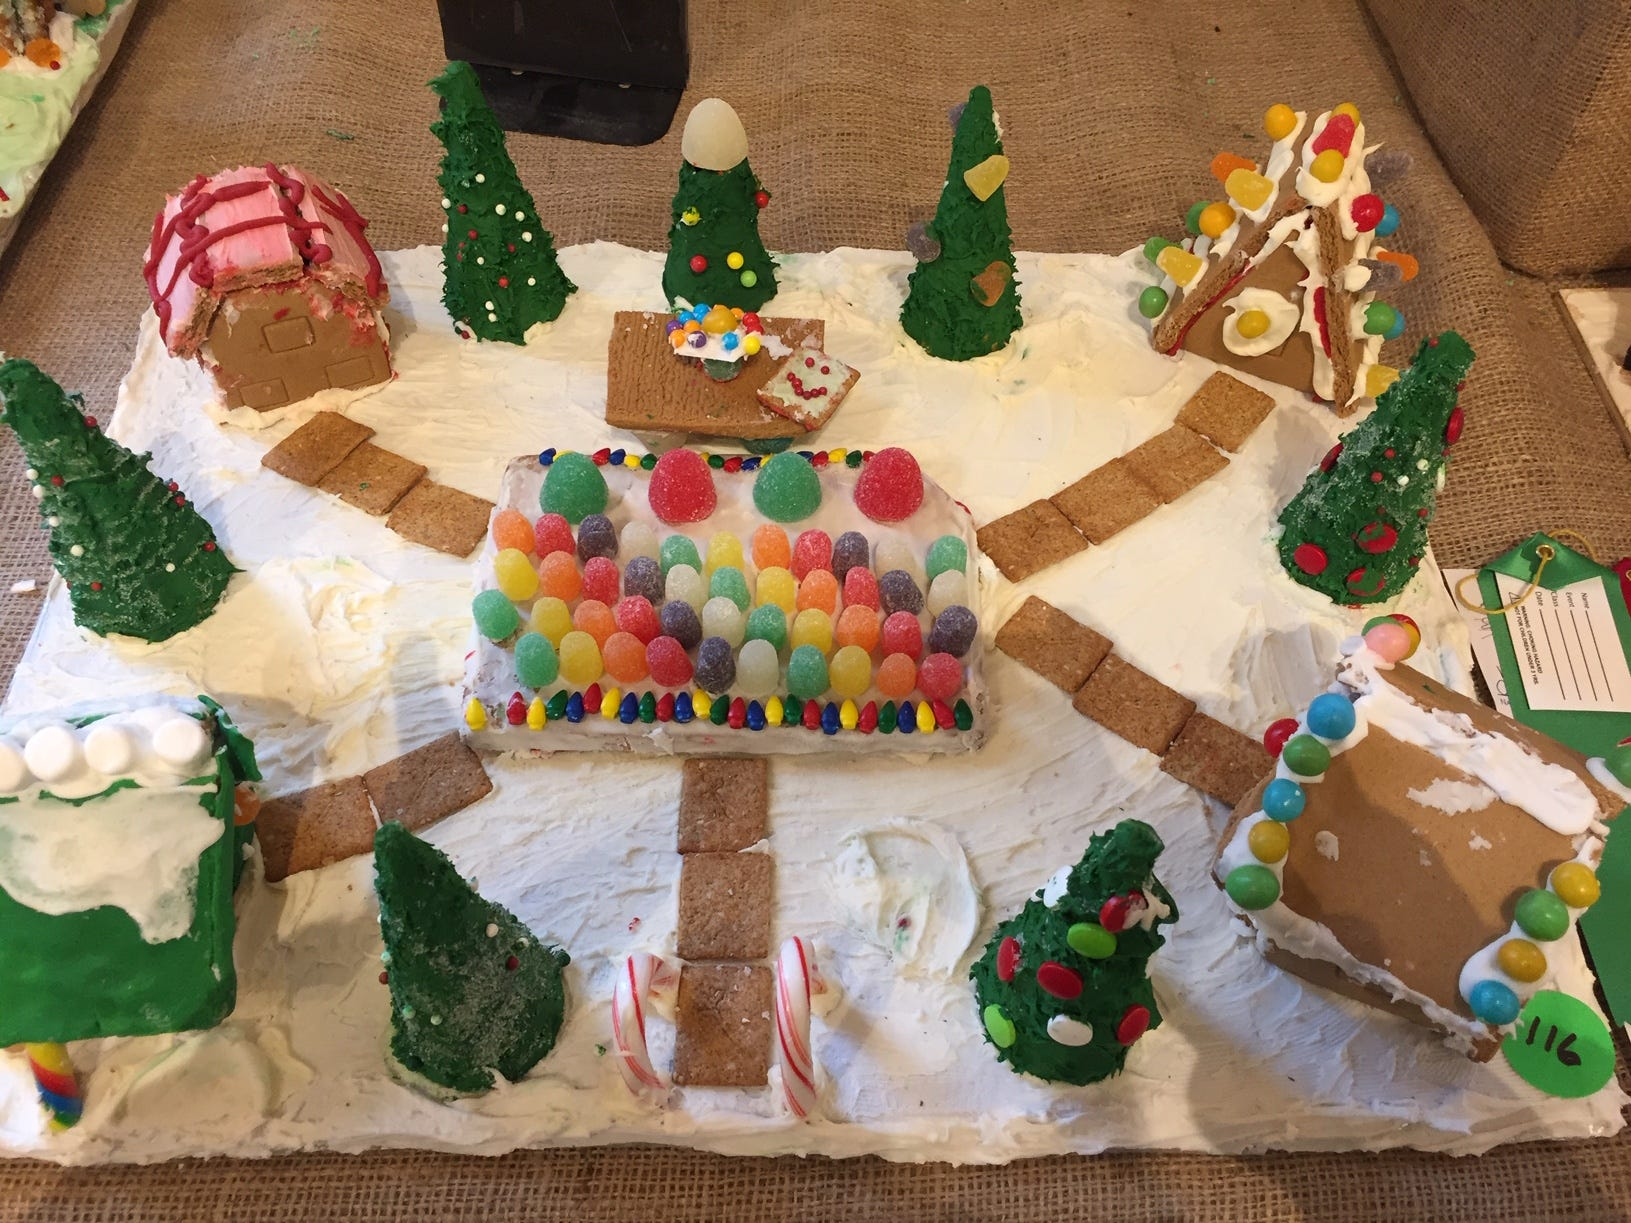 """Gum Drop Garden"" by Hawthorne/North Haledon Troop 94692 at the 2018 Gingerbread Wonderland at the Frelinghuysen Arboretum. Scout category."